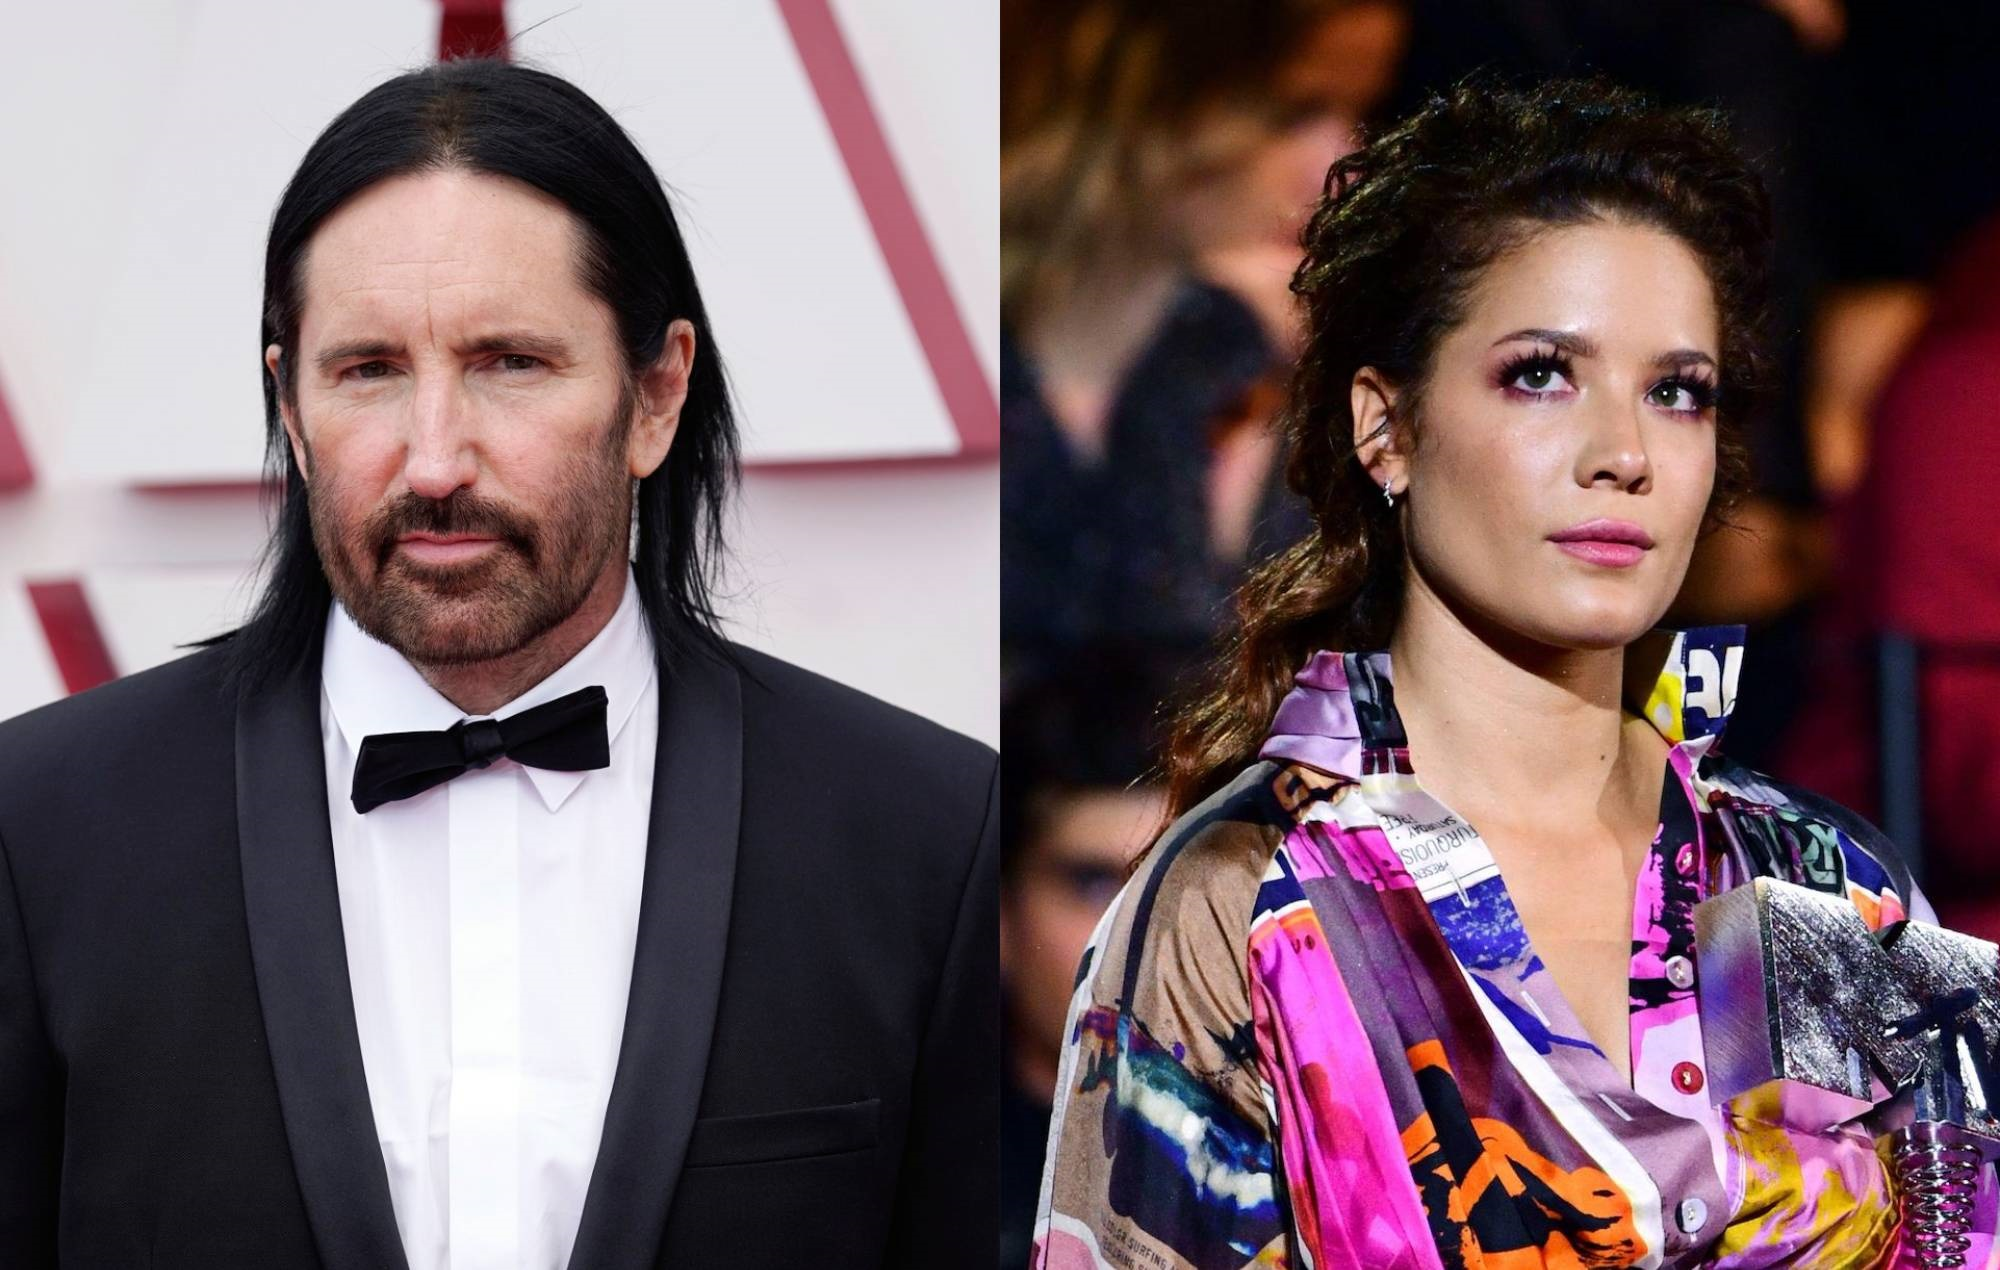 """Trent Reznor says producing Halsey's album """"changed"""" him """"in a good way"""""""